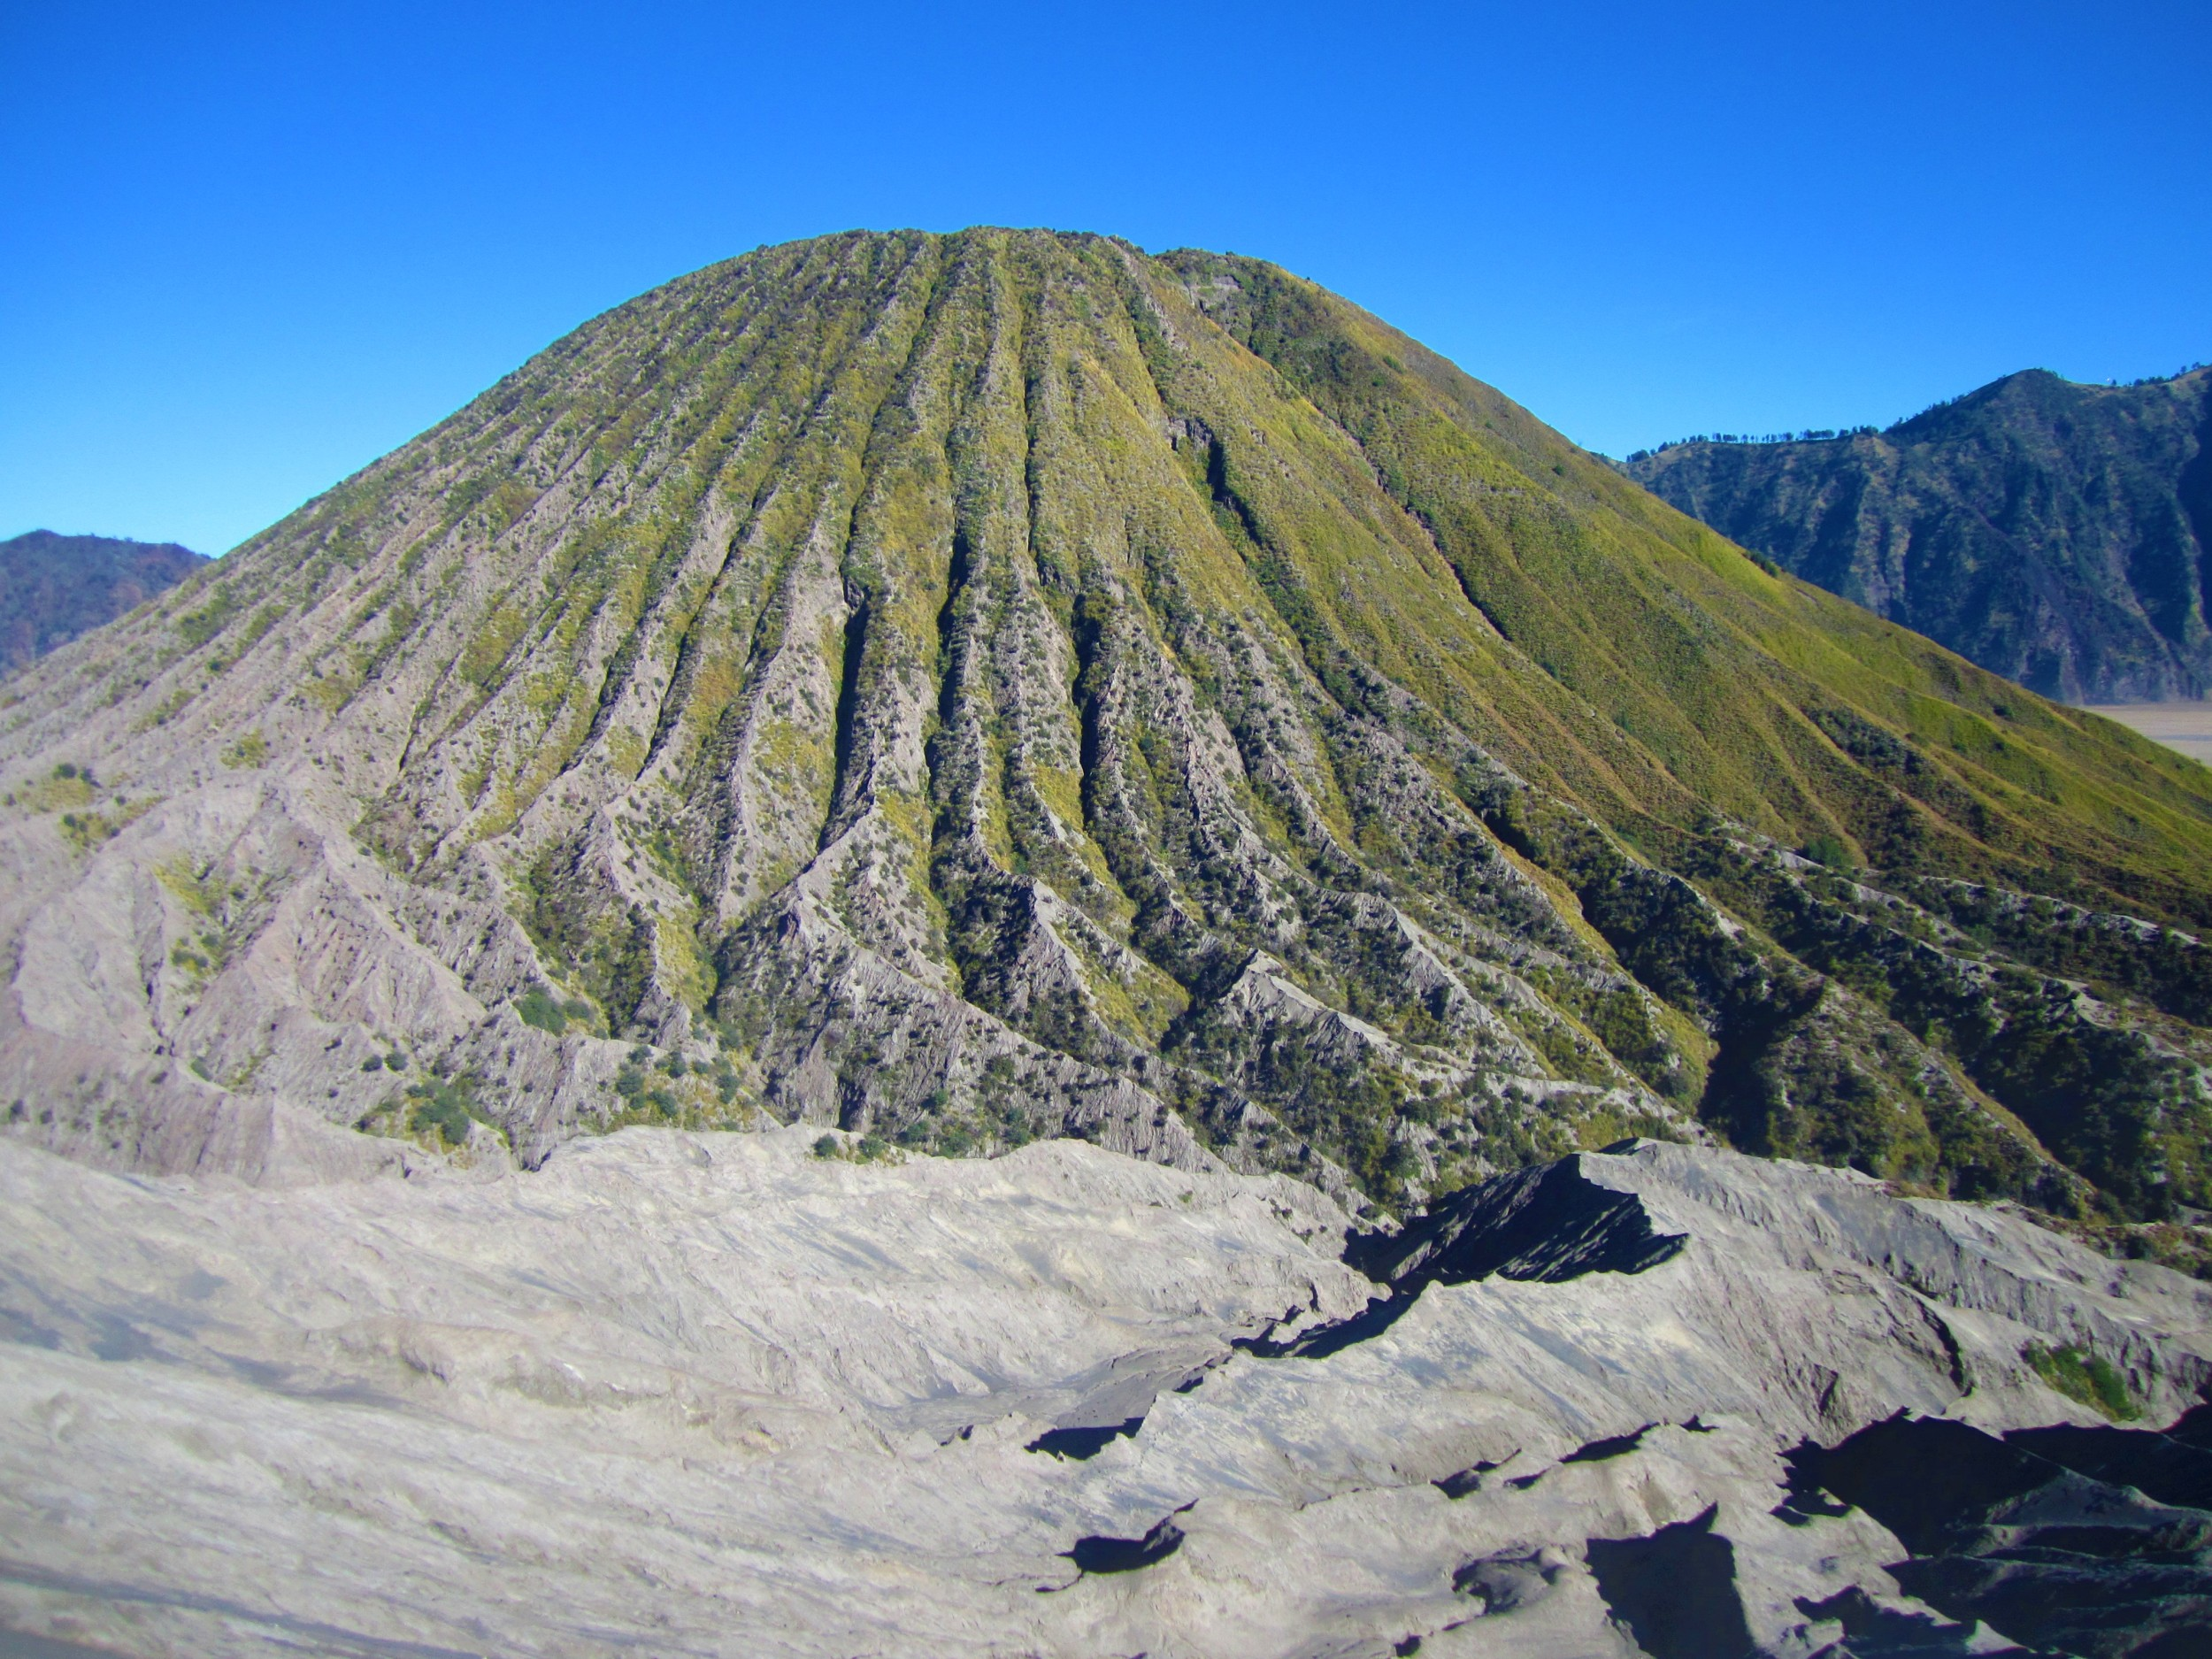 View of Mt. Batok along our climb to Mt. Bromo